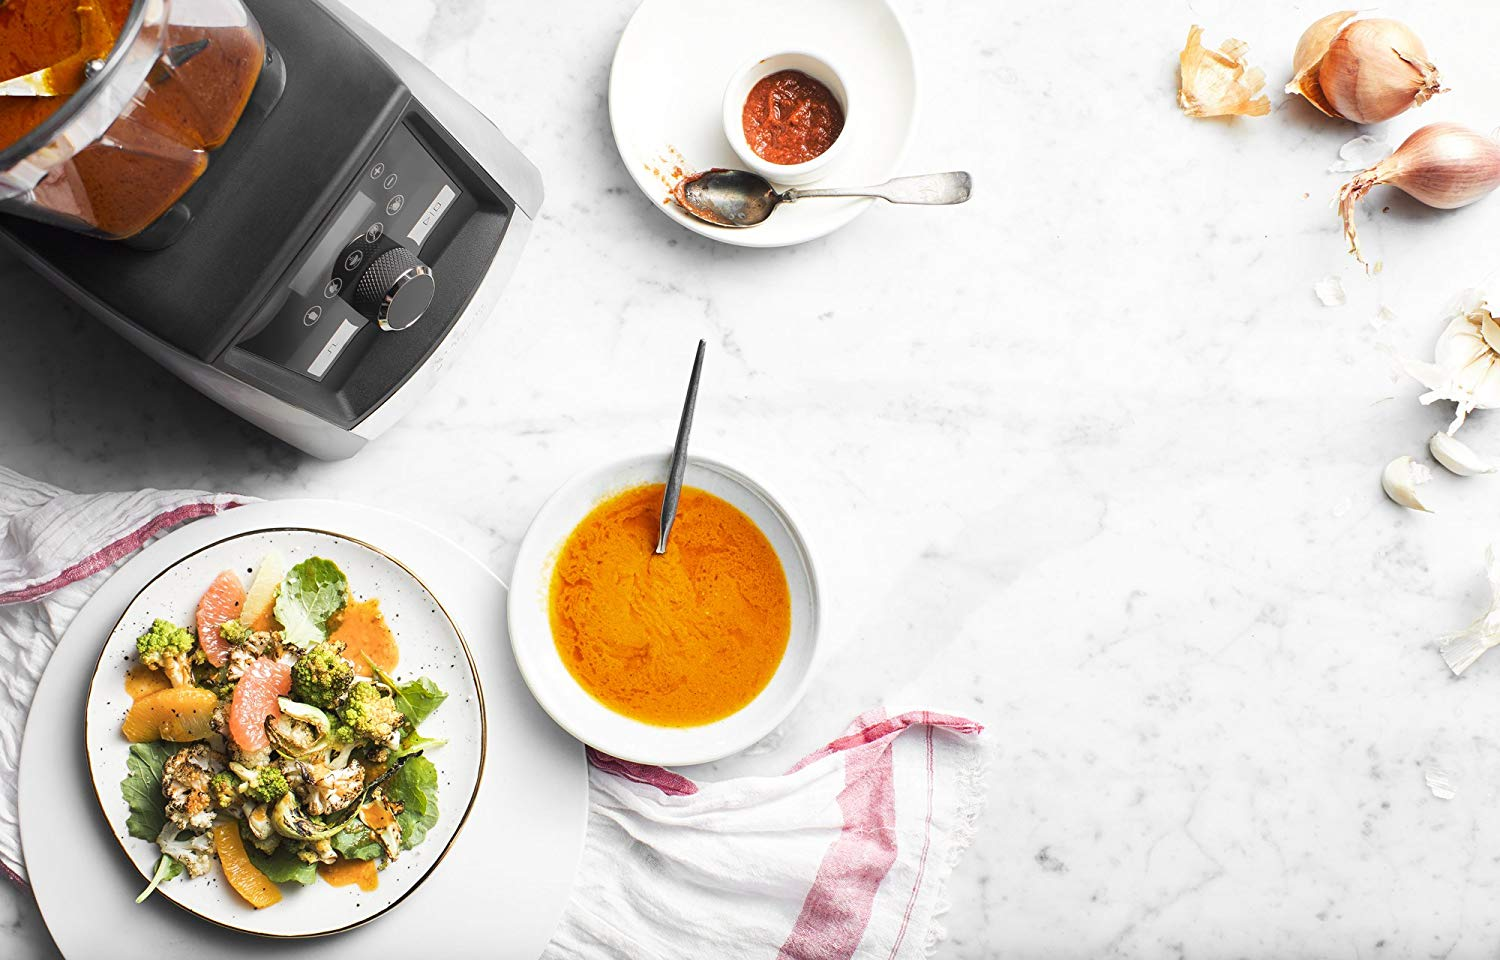 Vitamix a3500 review and features